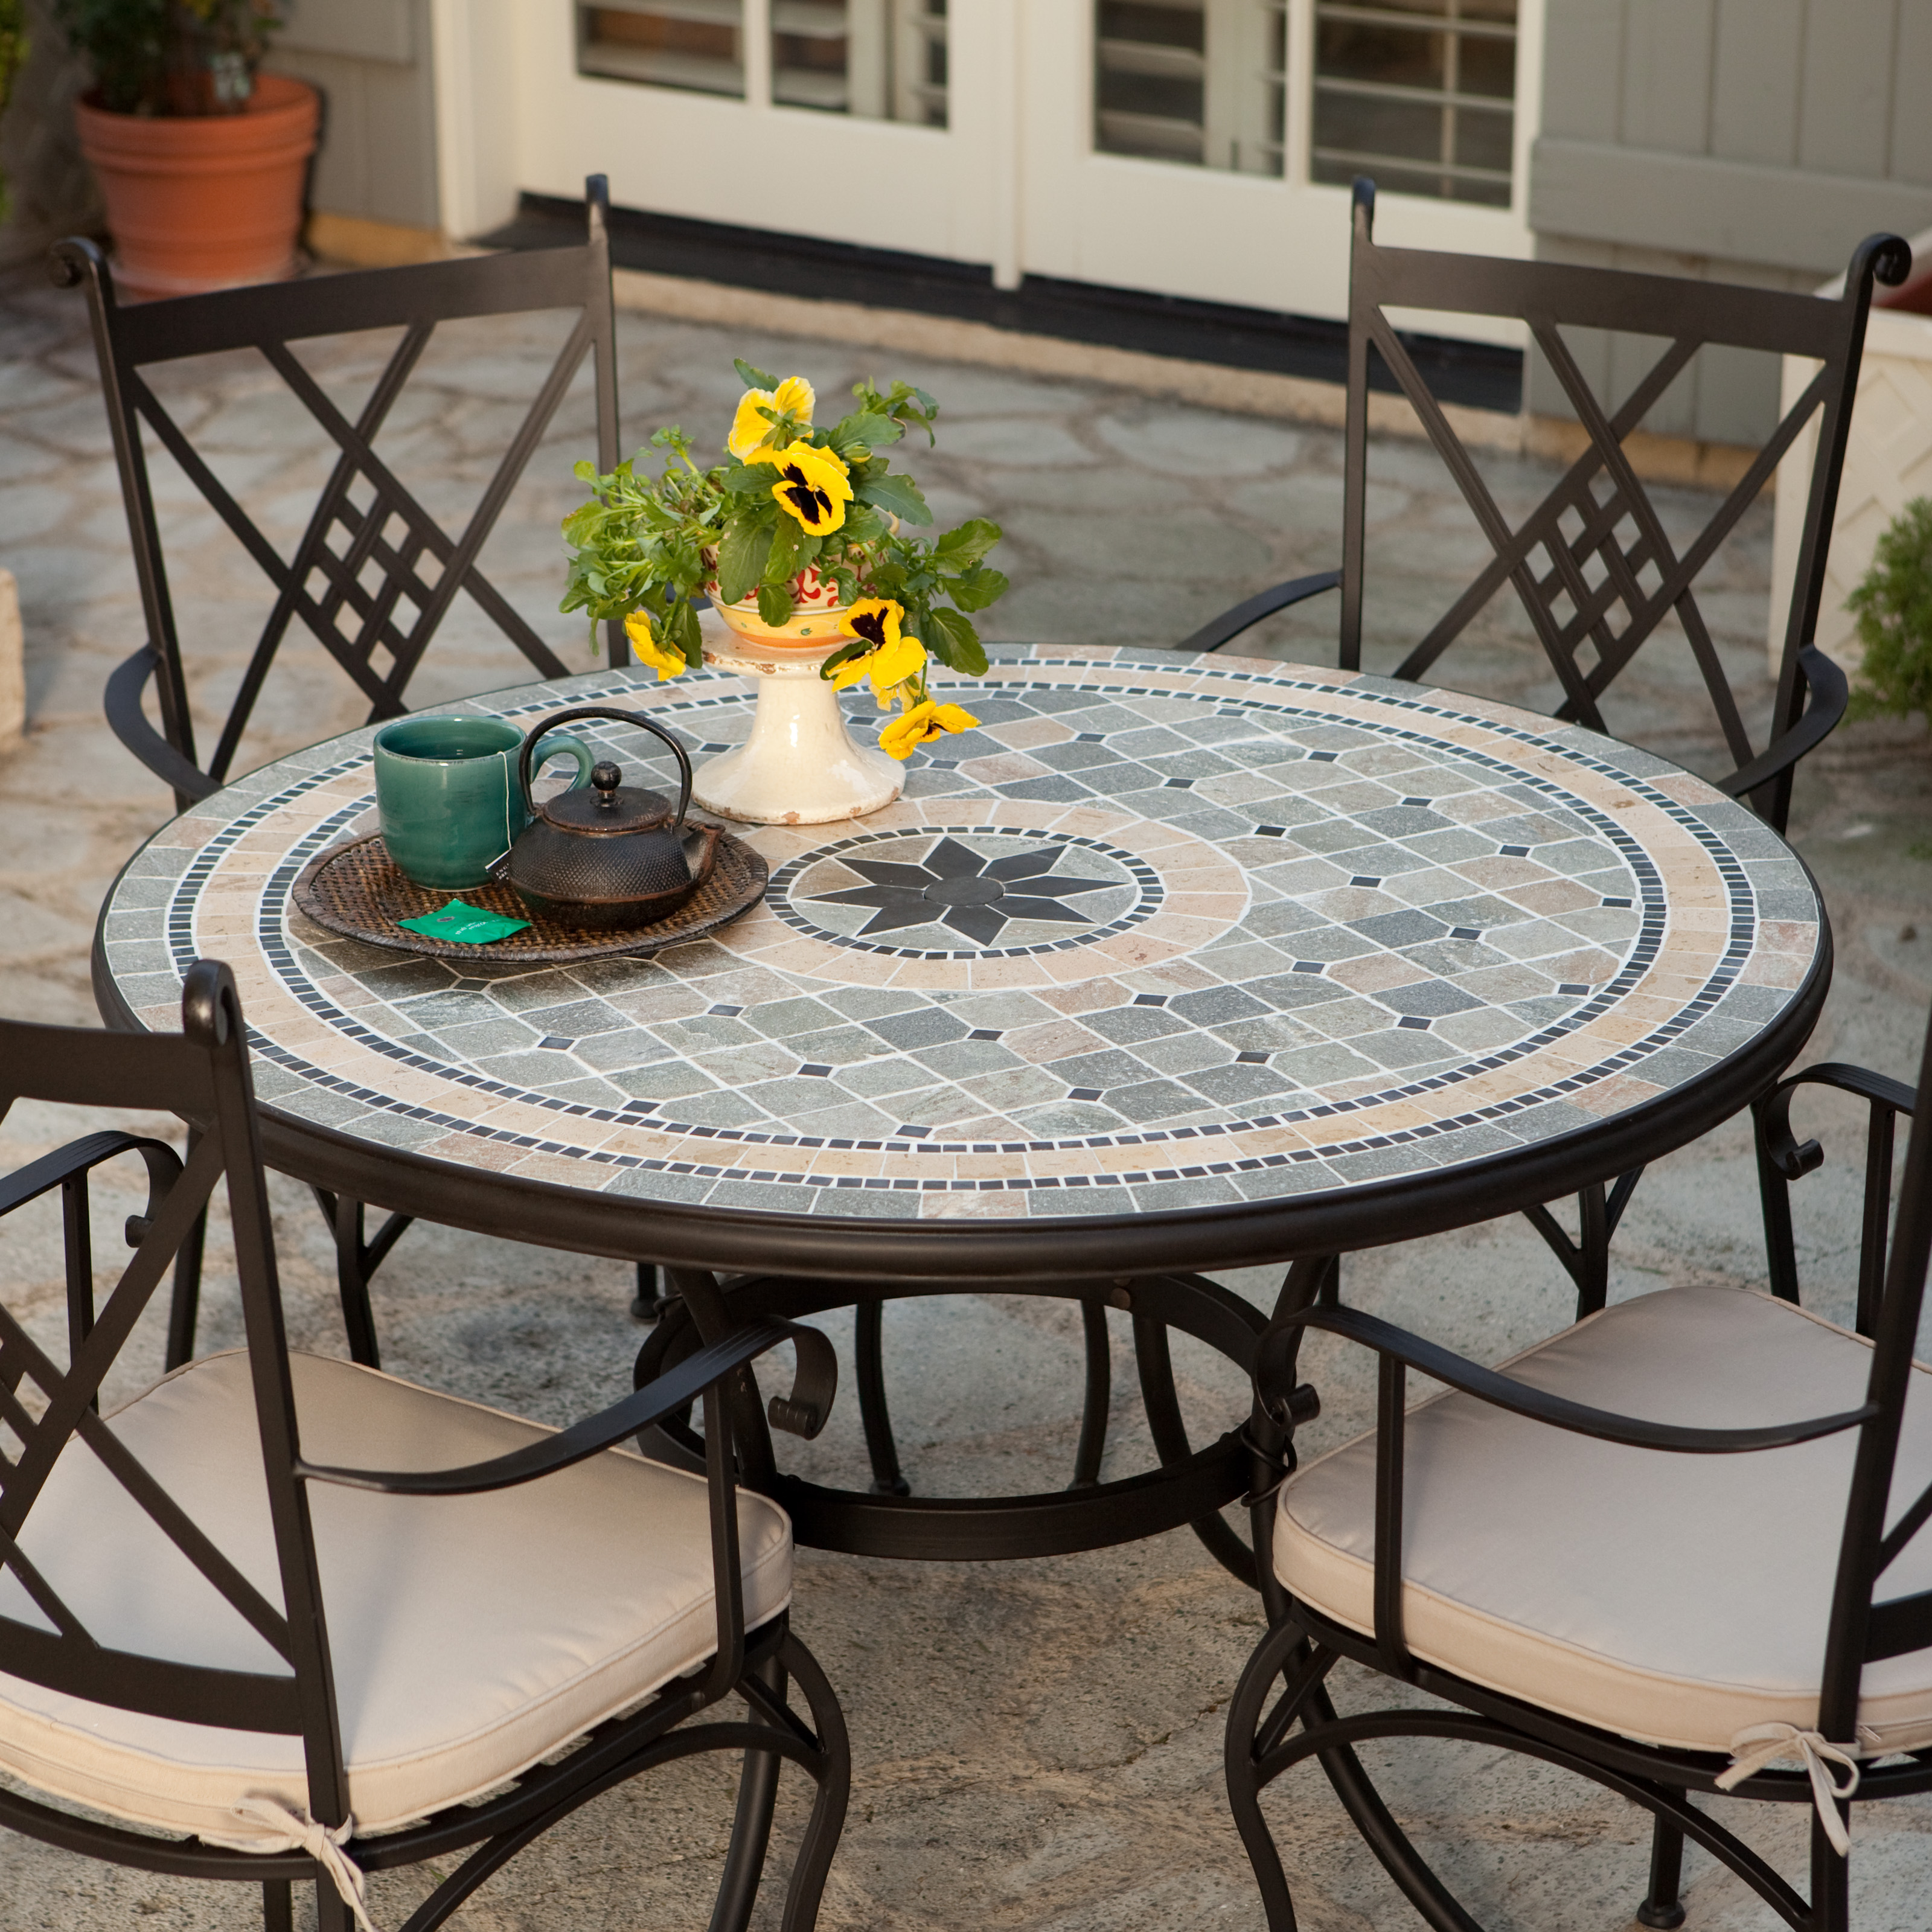 Belham Living Barcelona 48 in. Round Mosaic Patio Dining